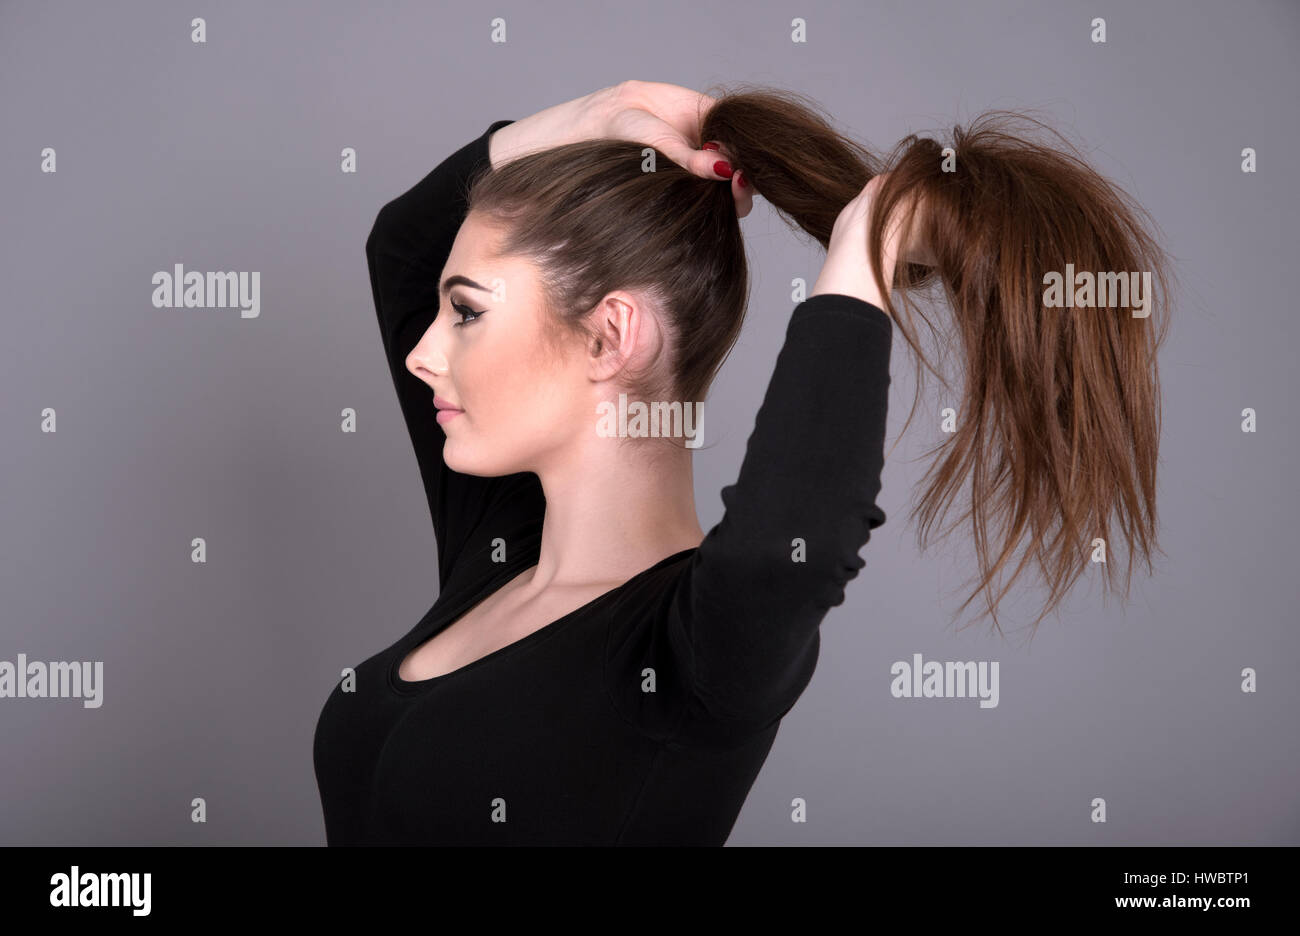 Young woman holding her long dark coloured hair in a pony tail - Stock Image